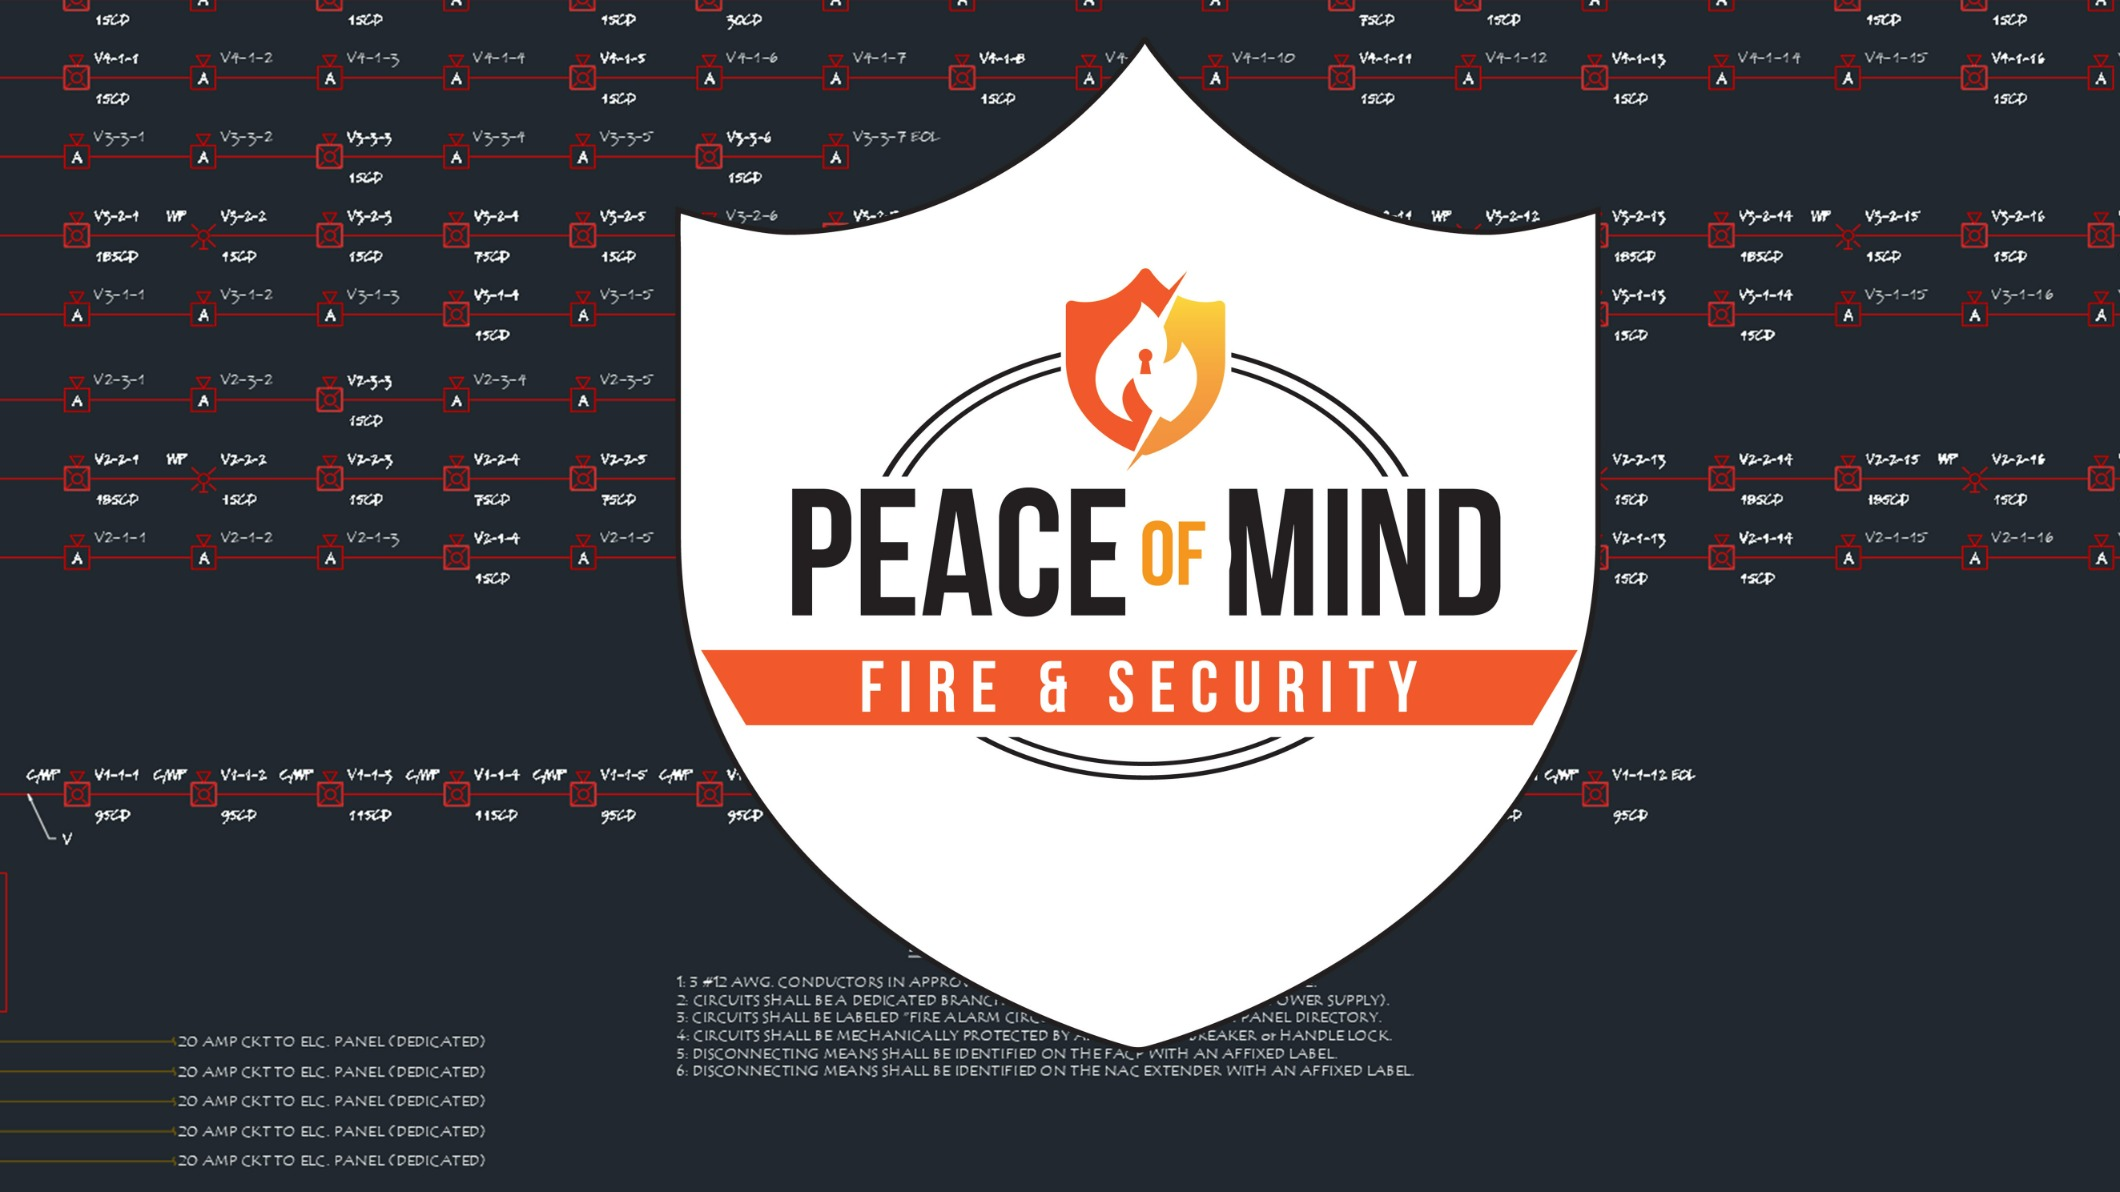 PEACE OF MIND FIRE & SECURITY SAFETY LLC